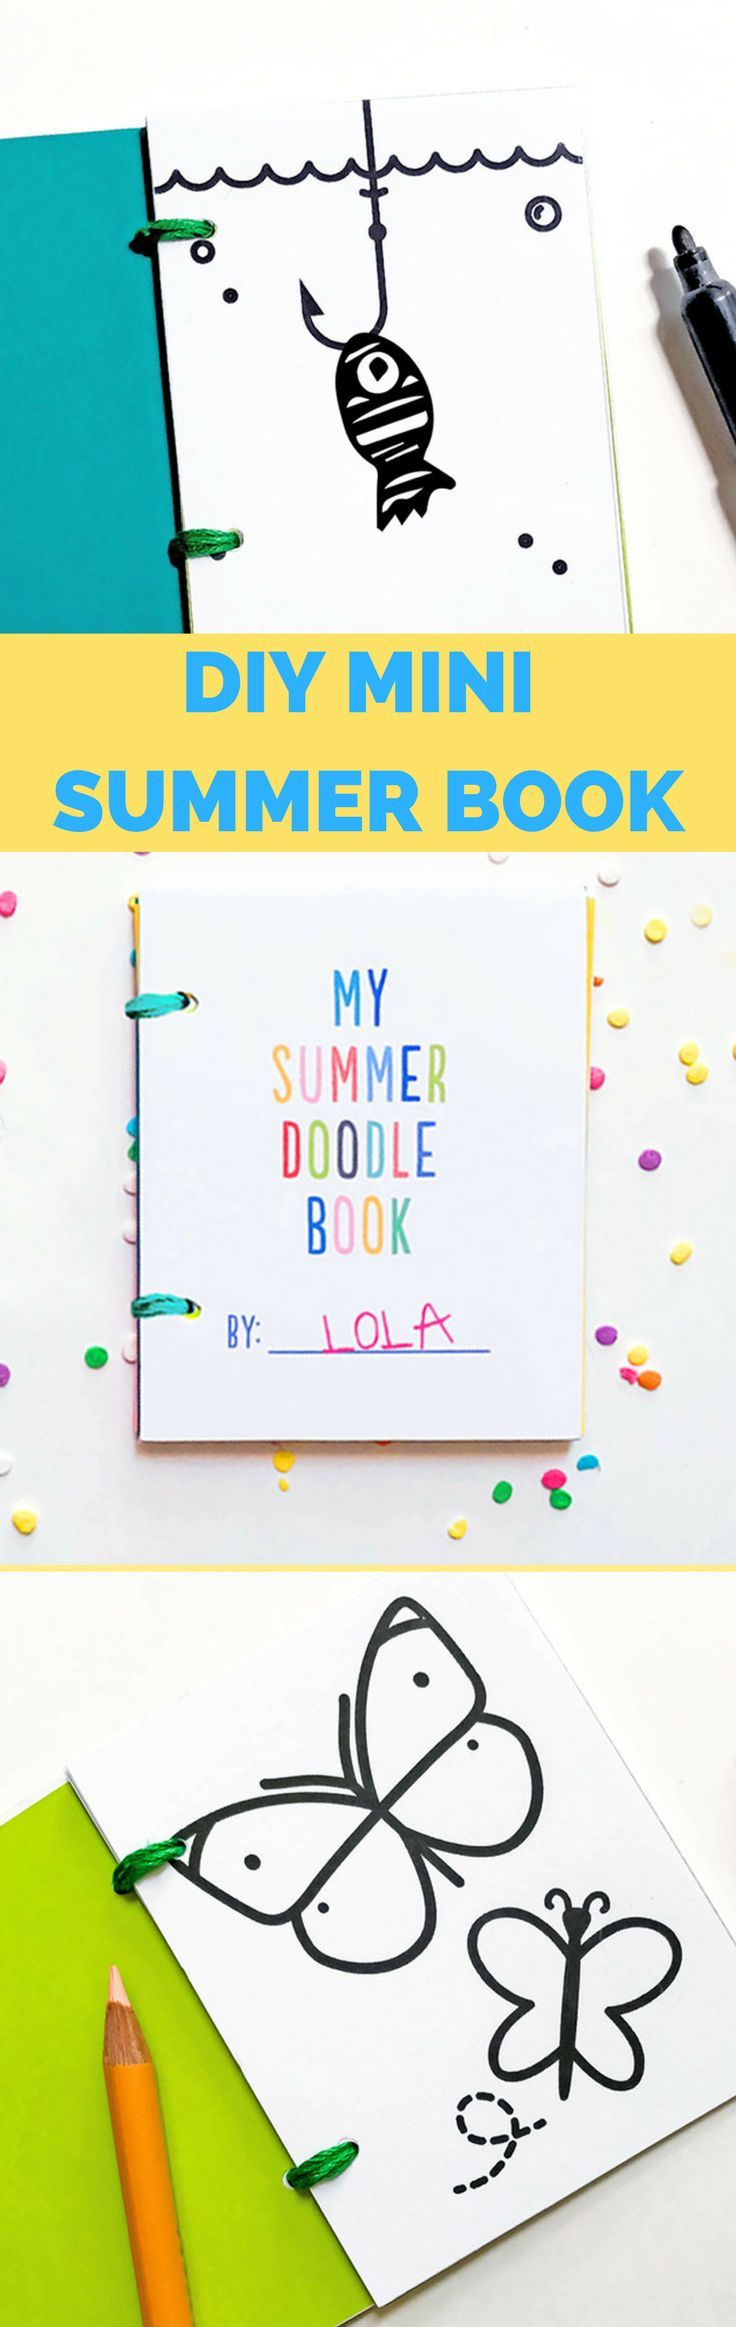 DIY Mini Summer Doodle Books With Free Printables Adorable Coloring Art Project And